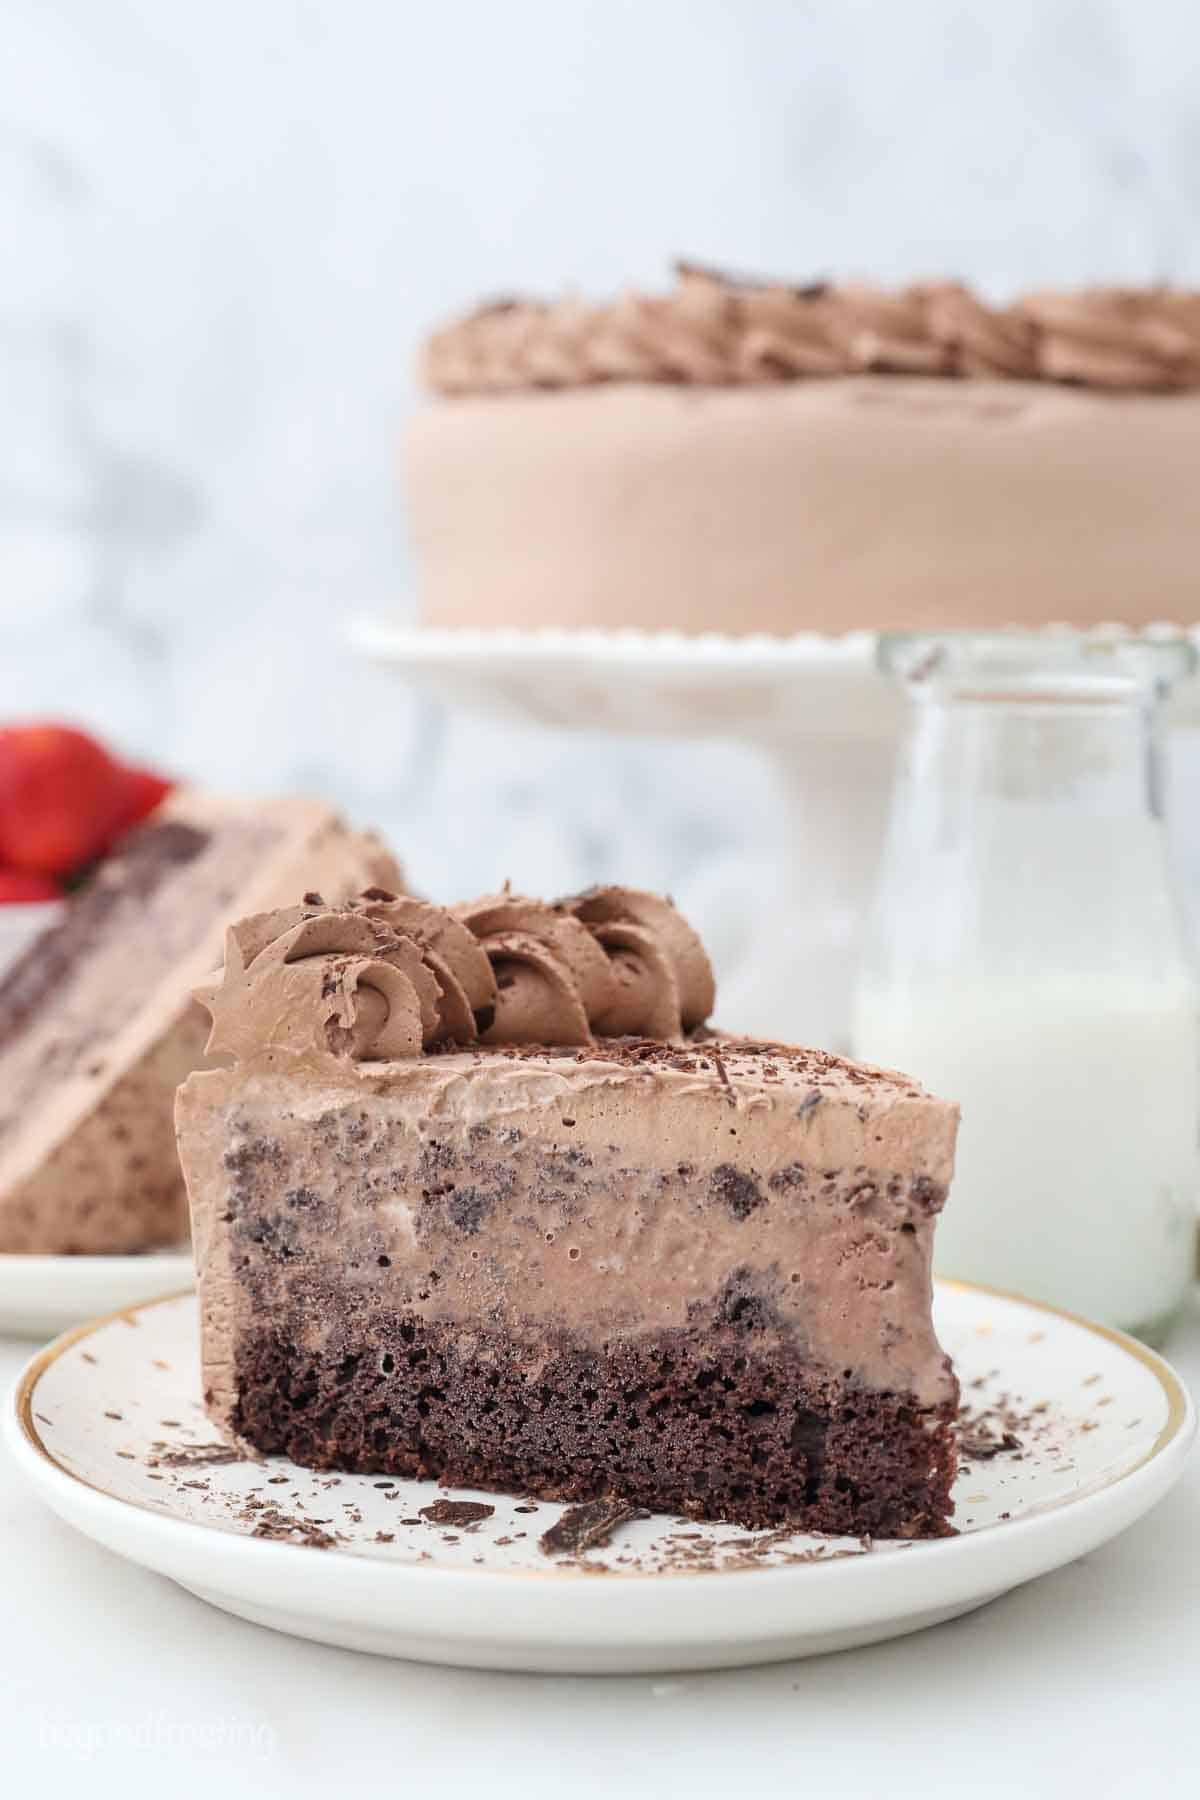 a slice of two layer chocolate ice cream cake on a plate with a glass of milk